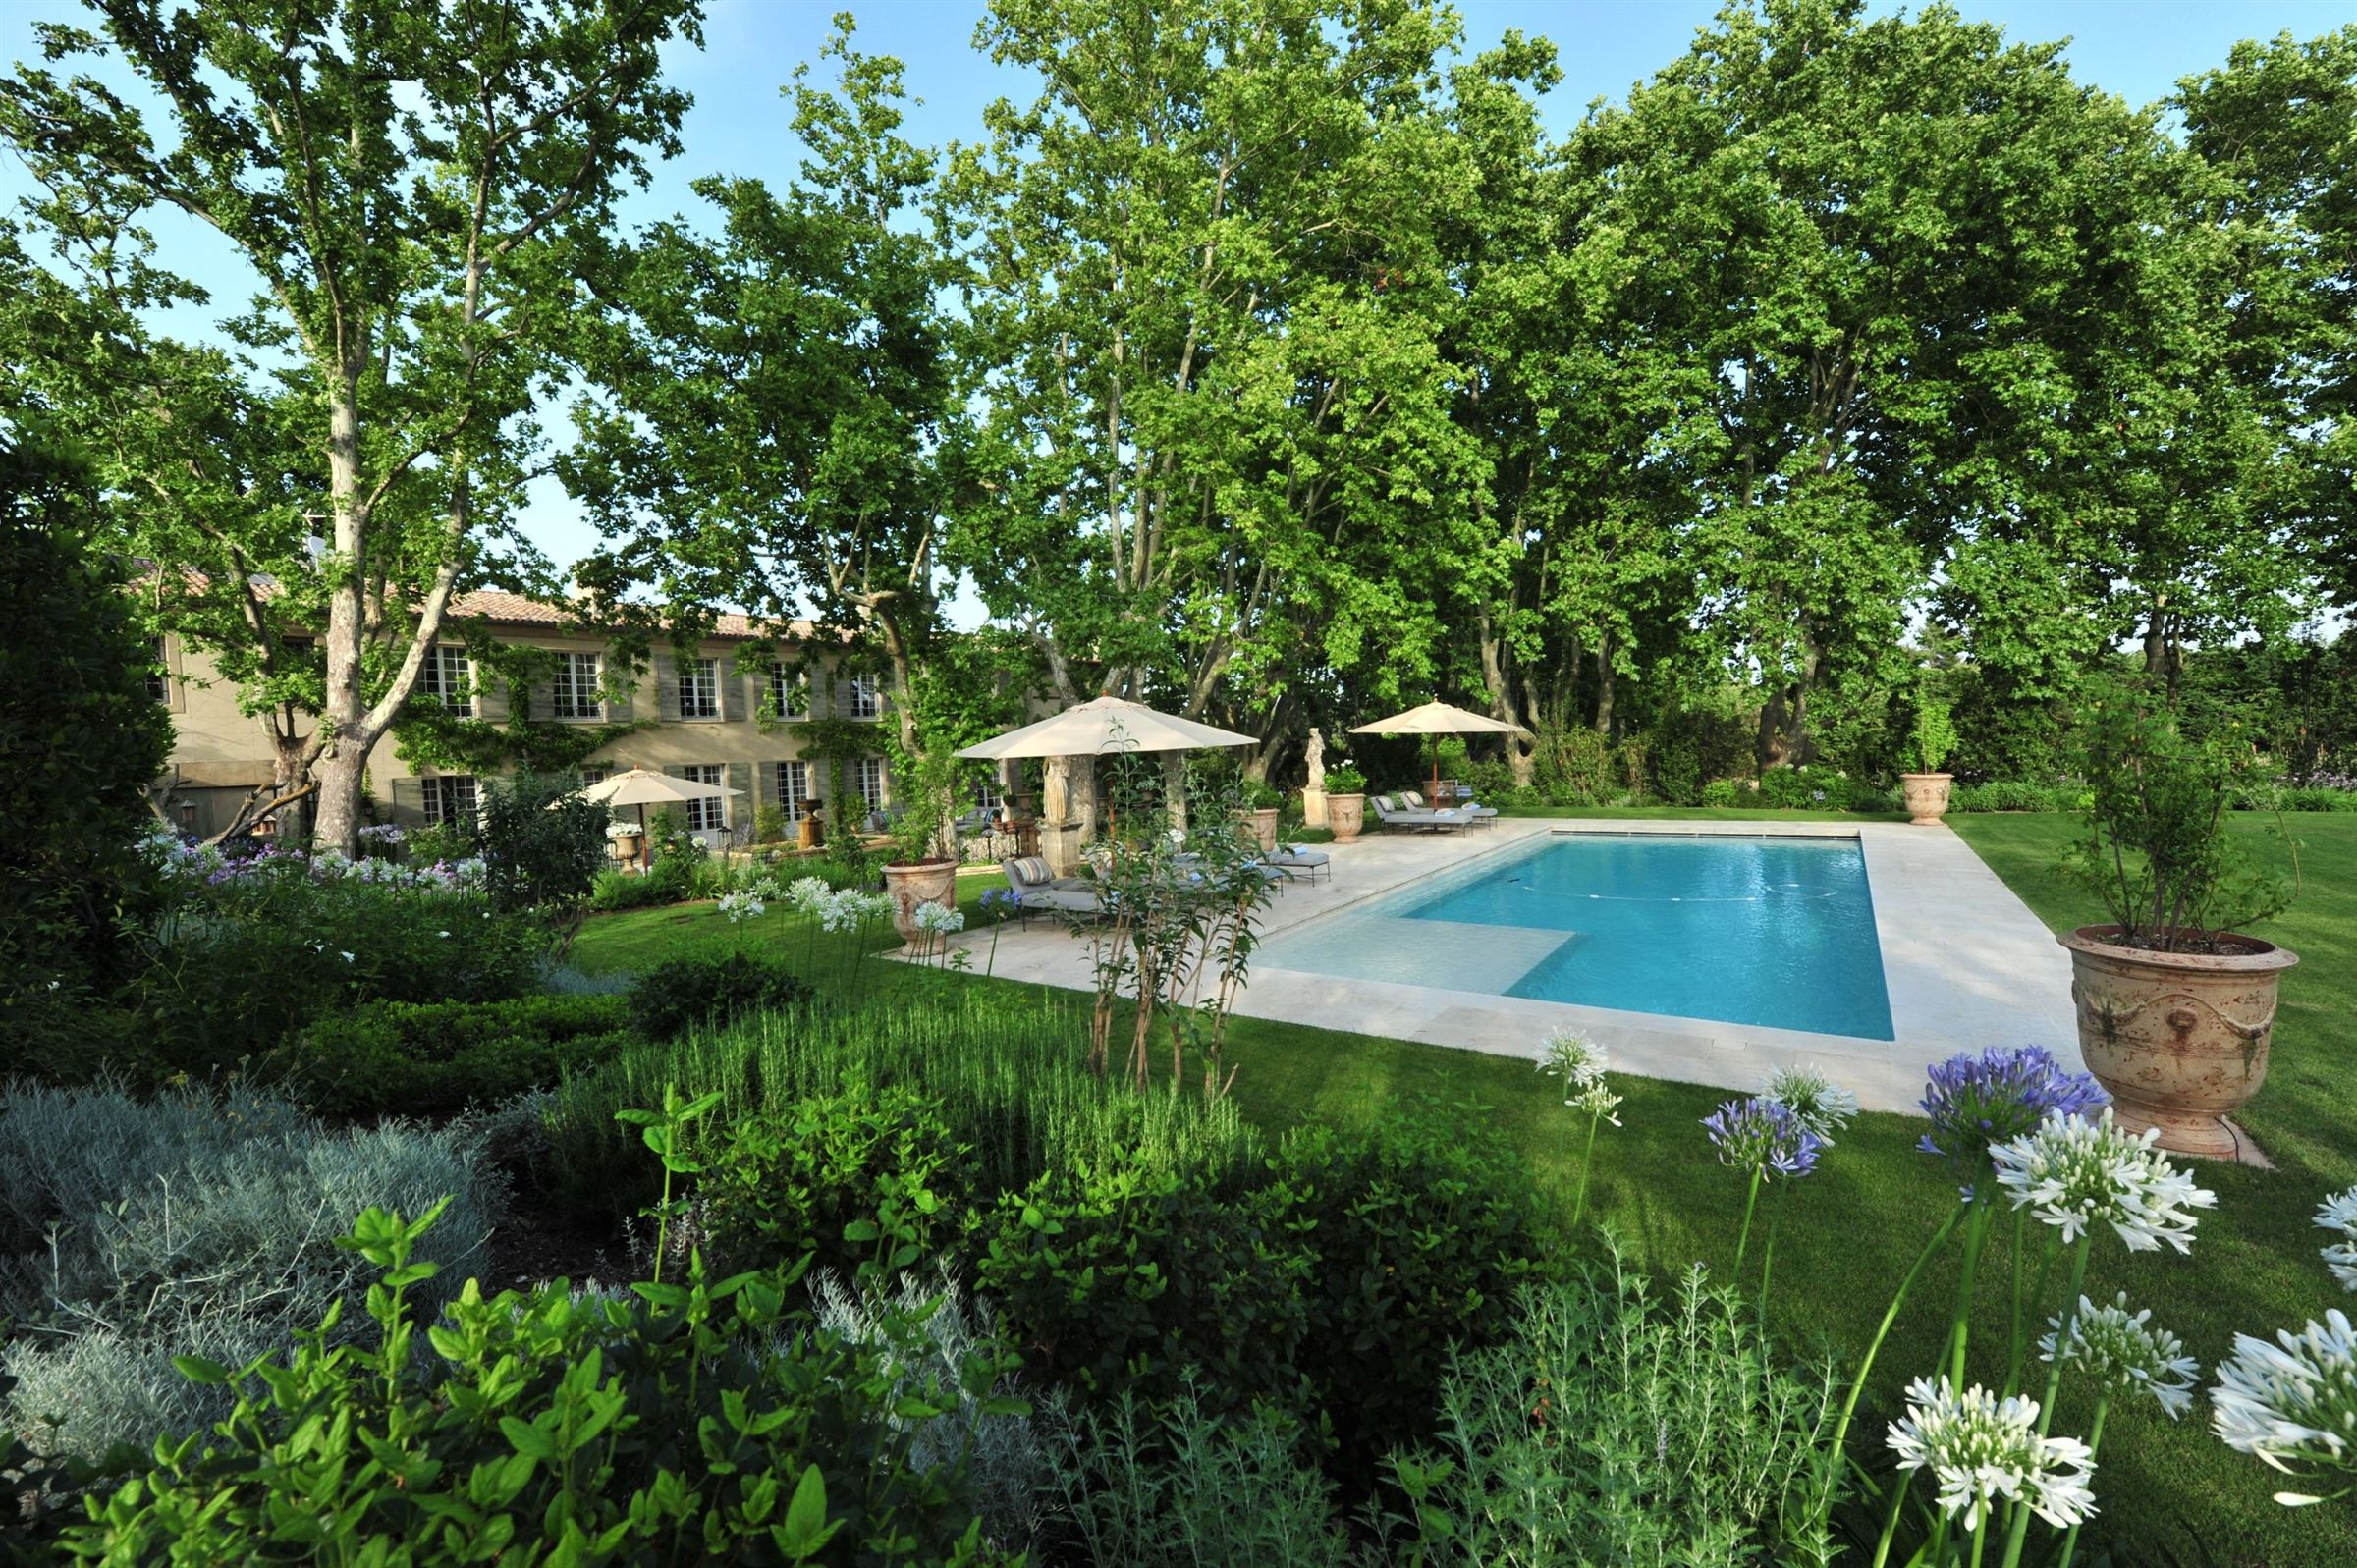 Single Family Home for sale in , AIX EN PROVENCE, Provence-Alpes-Côte d'Azur ,13100  , France